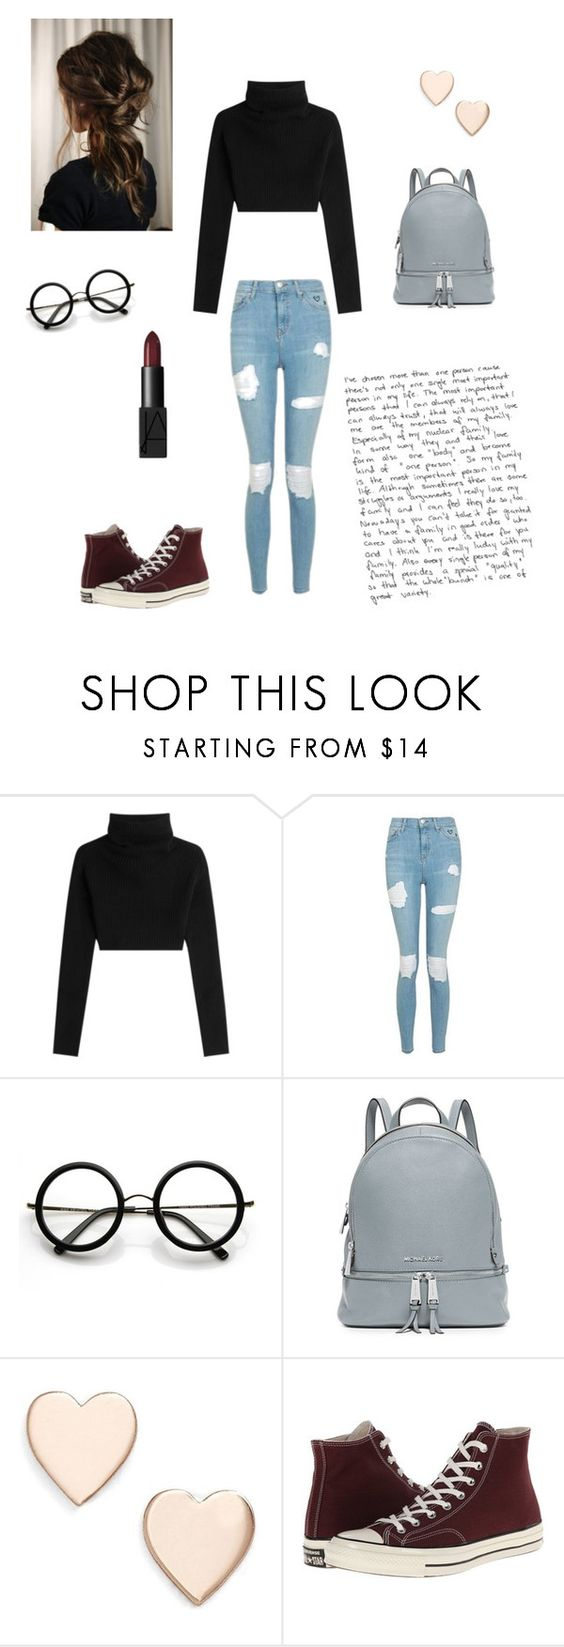 """""""Untitled #82"""" by brianna-miller-bts-army ❤ liked on Polyvore featuring Valentino, Topshop, ZeroUV, MICHAEL Michael Kors, Poppy Finch, Converse and NARS Cosmetics"""